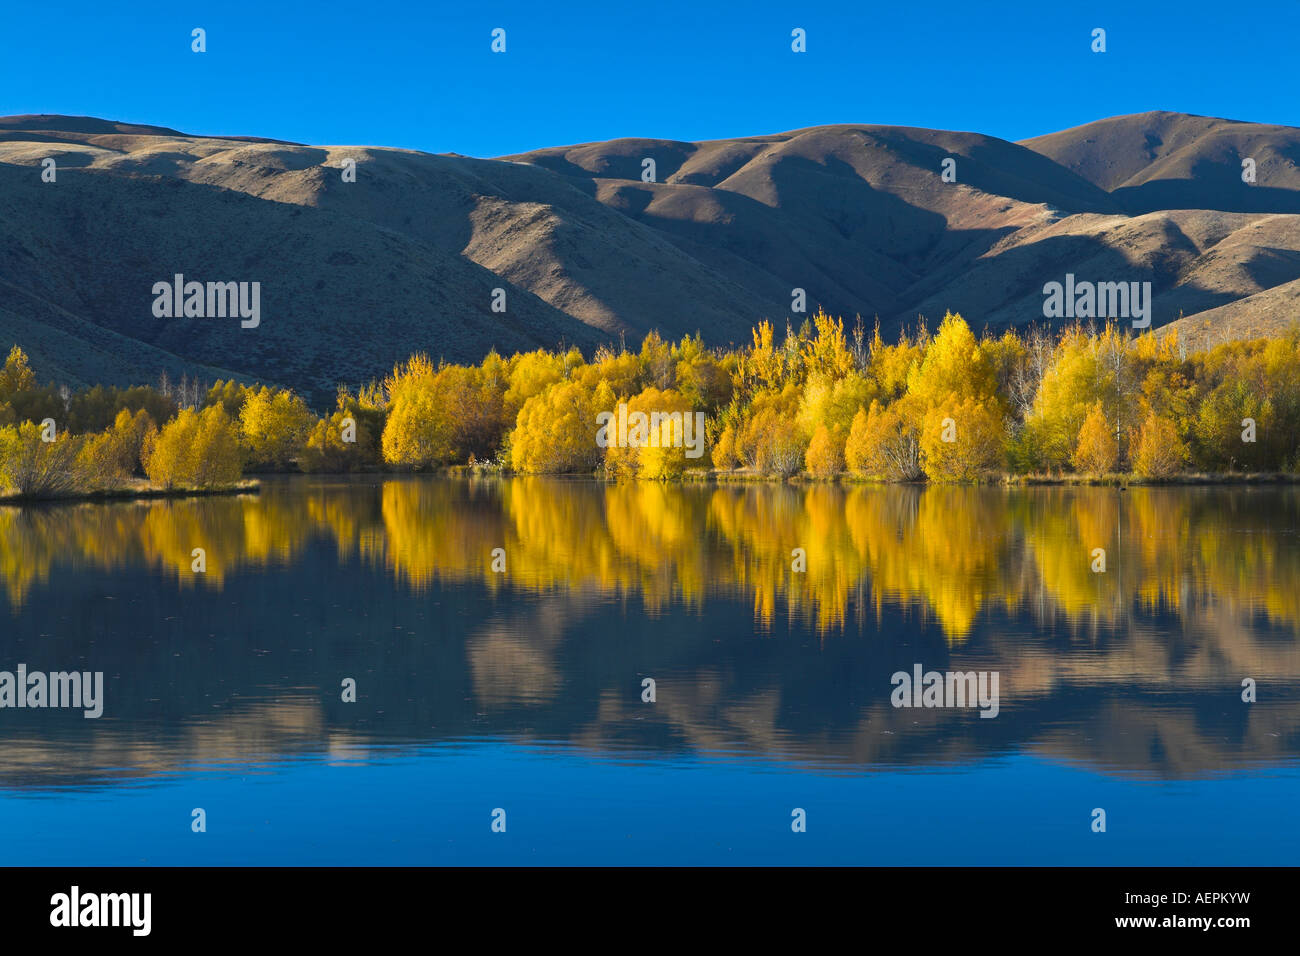 Intense golden foliage along a lakeside near Twizel, South Island, New Zealand - Stock Image